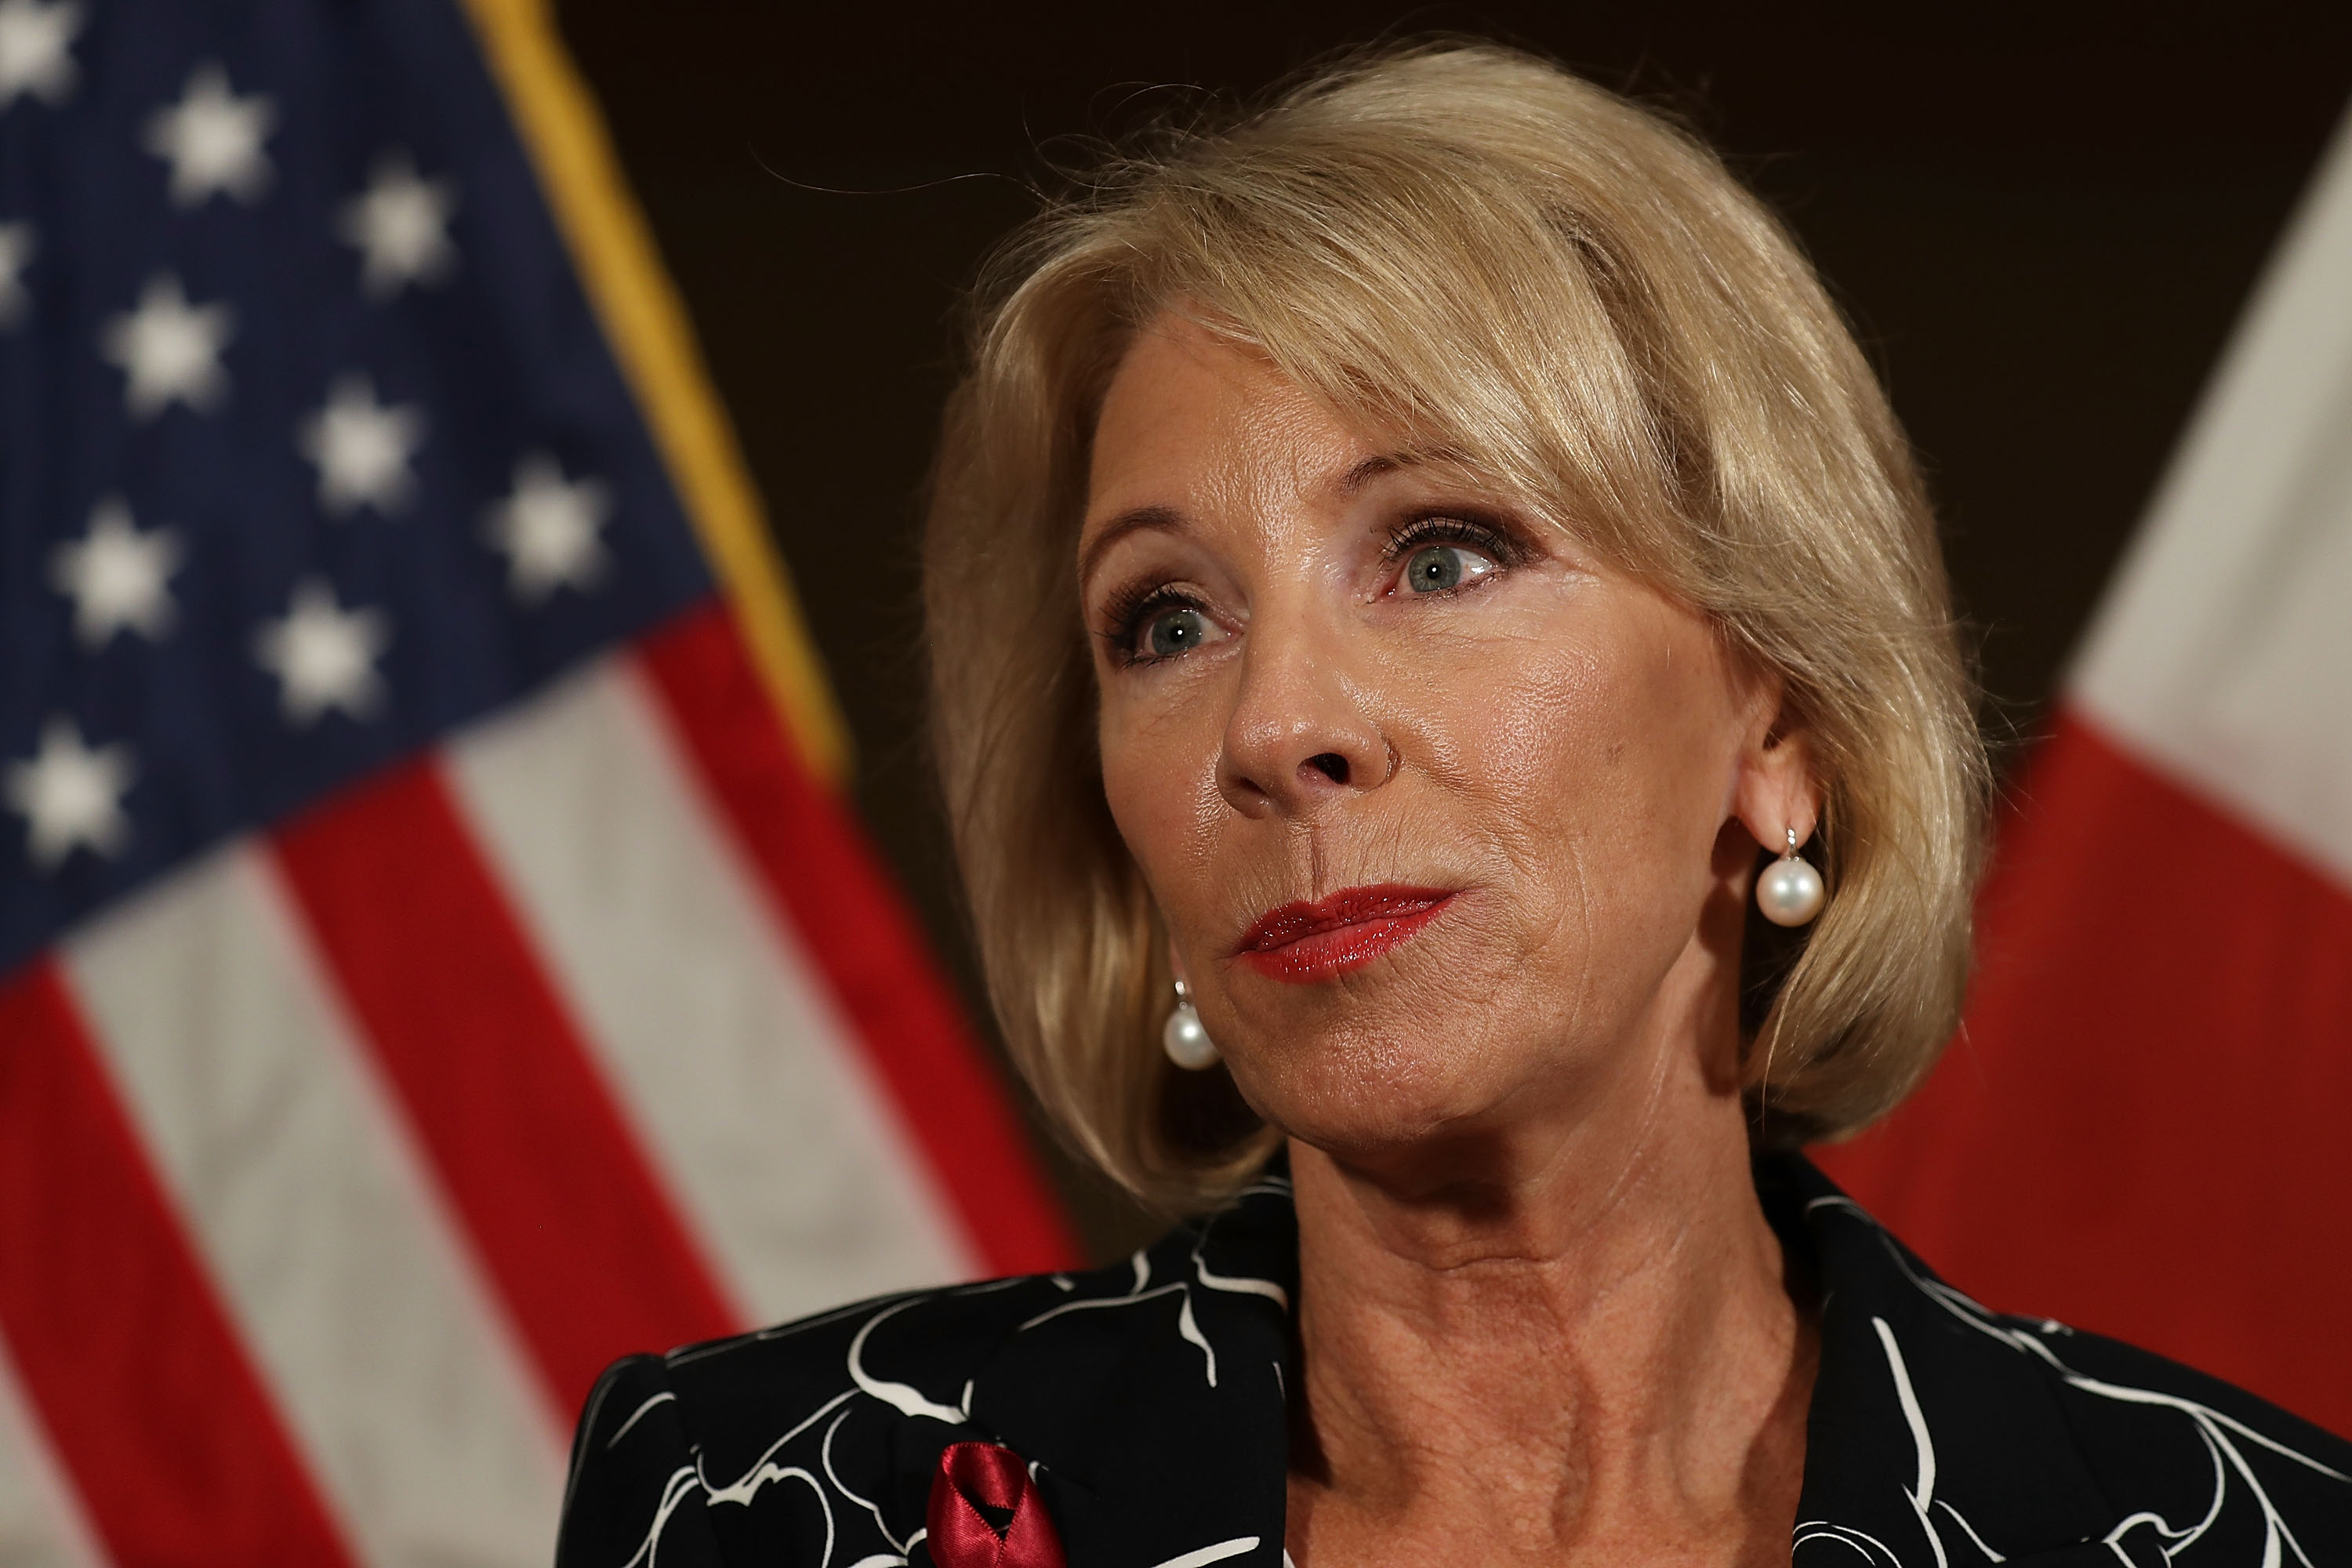 23 Attorneys General Sue Betsy DeVos to Repeal Overhaul of Student Loan Forgiveness Program